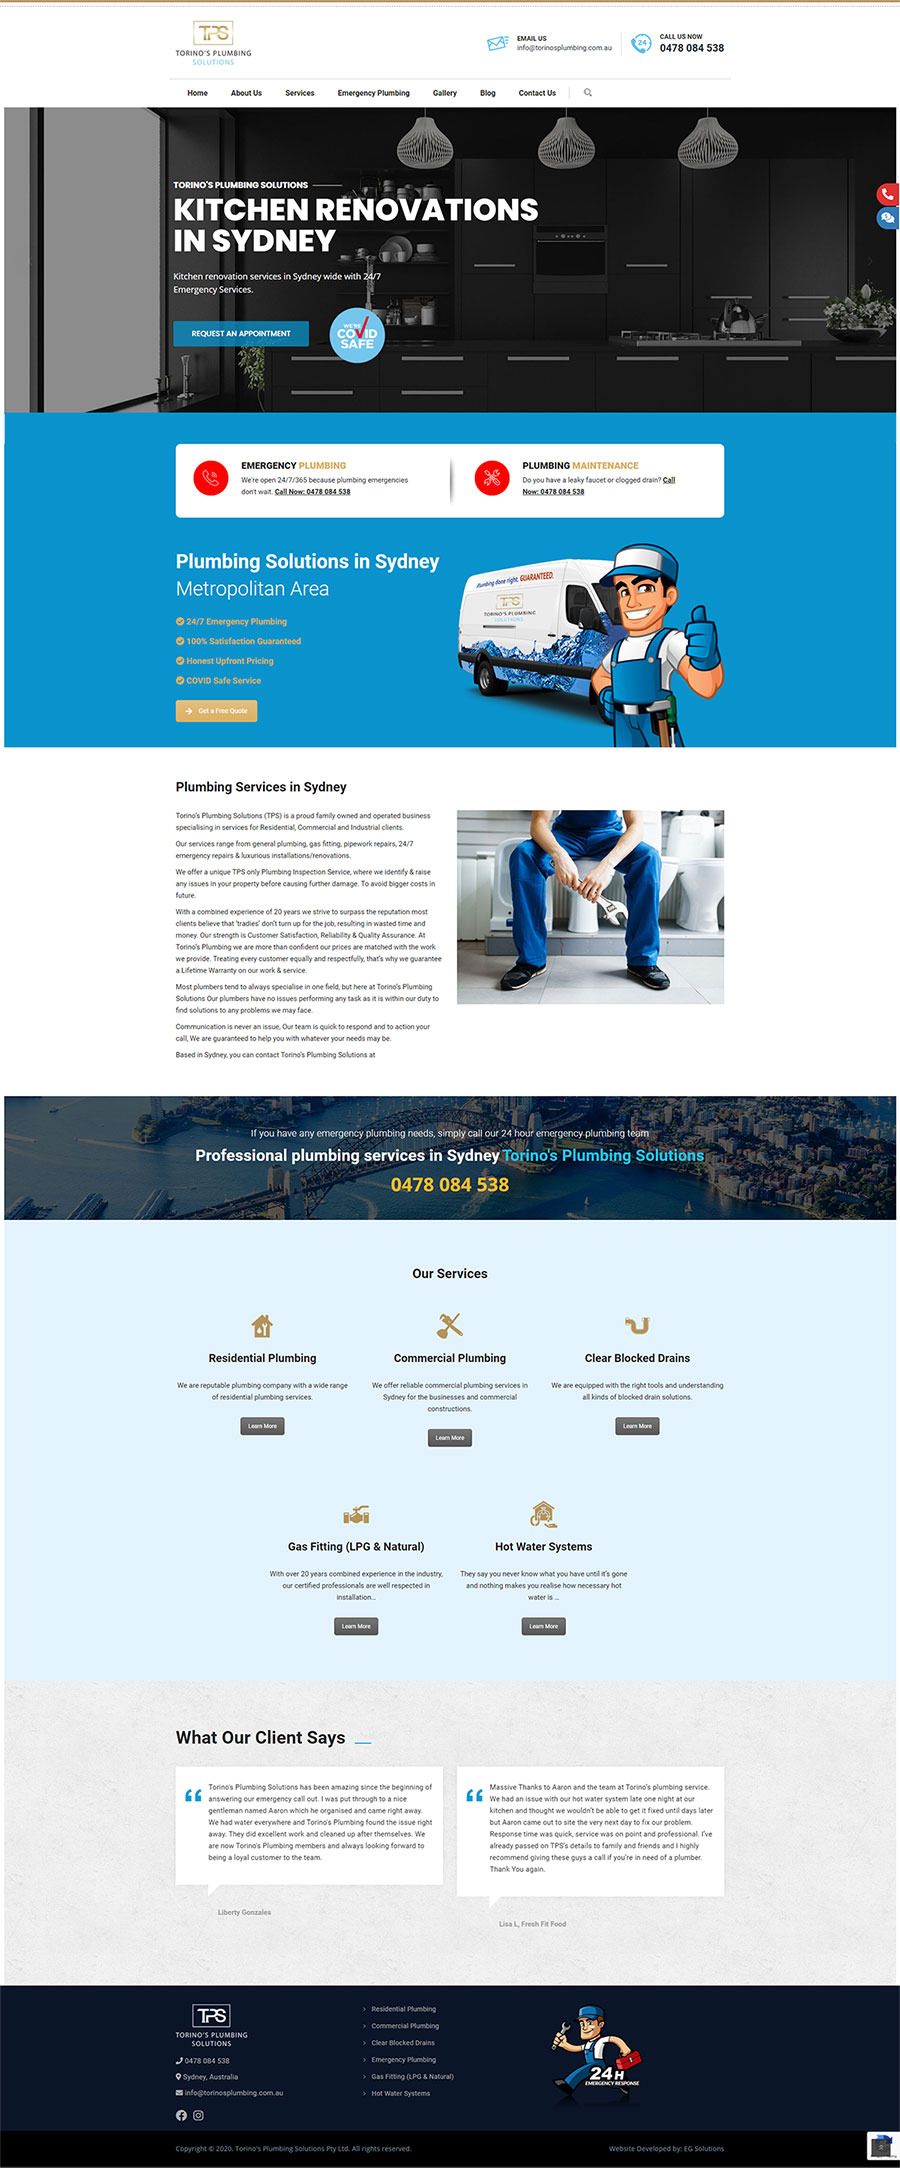 Torino's Plumbing Solutions - Home Page Design